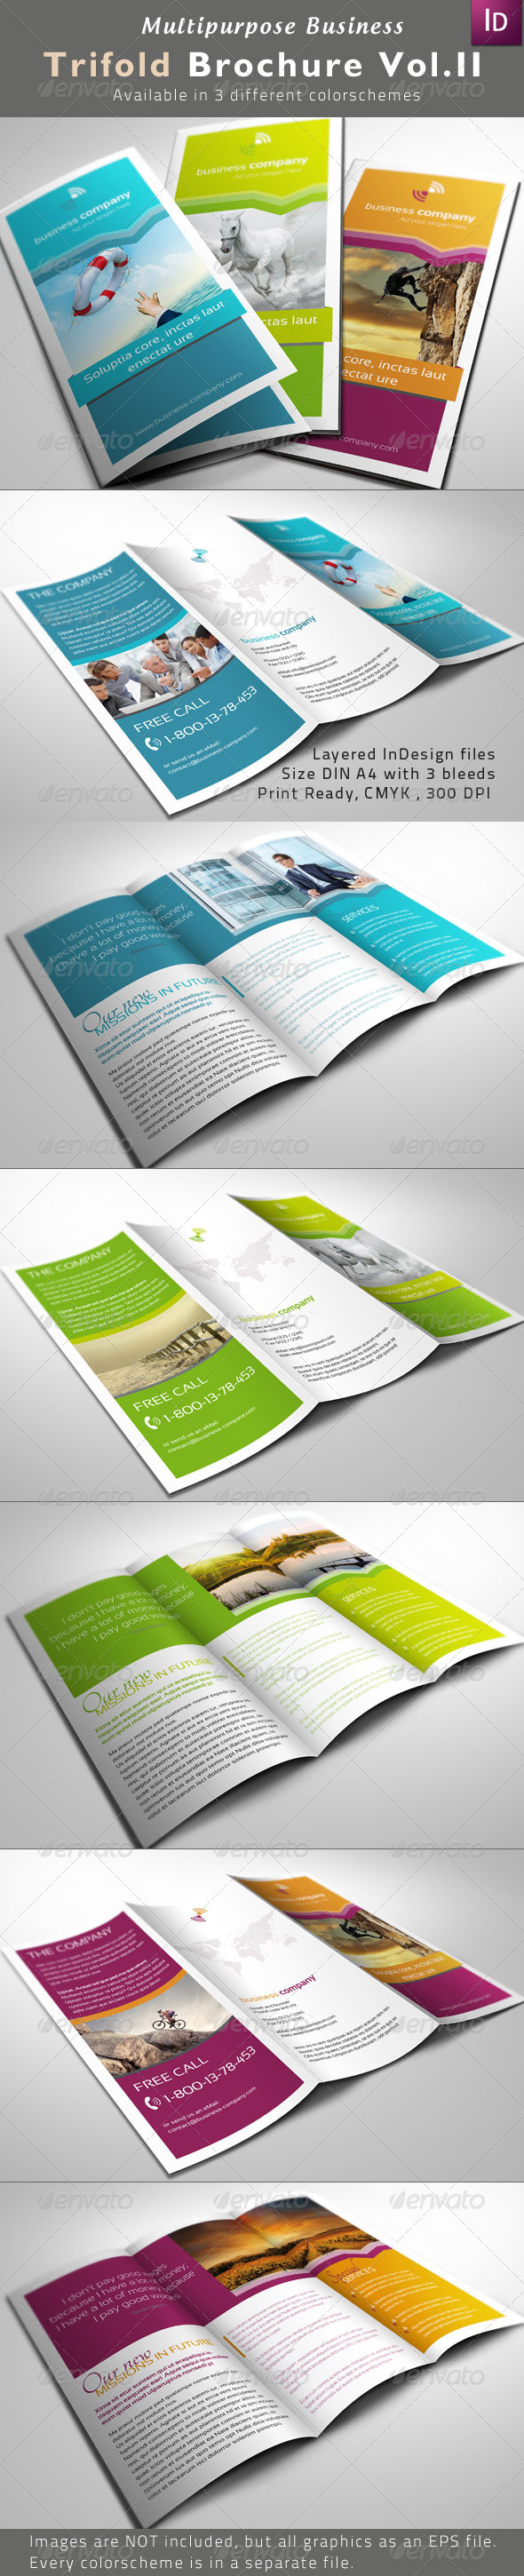 Multipurpose Trifold Brochures Vol. II - Corporate Brochures